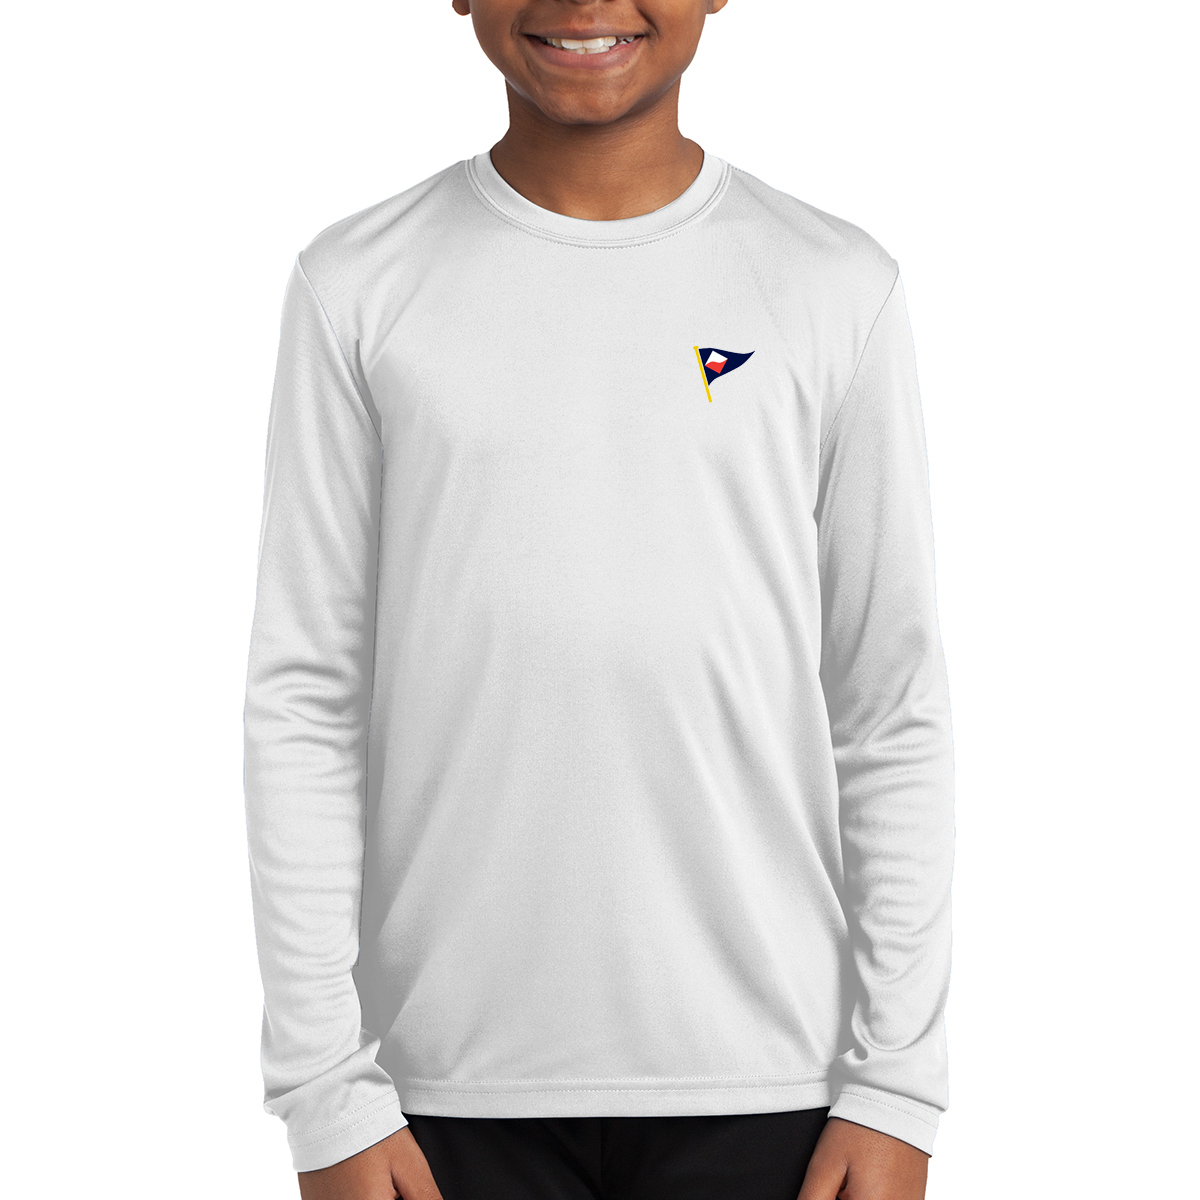 GUILFORD YACHT CLUB - K'S L/S TECH TEE